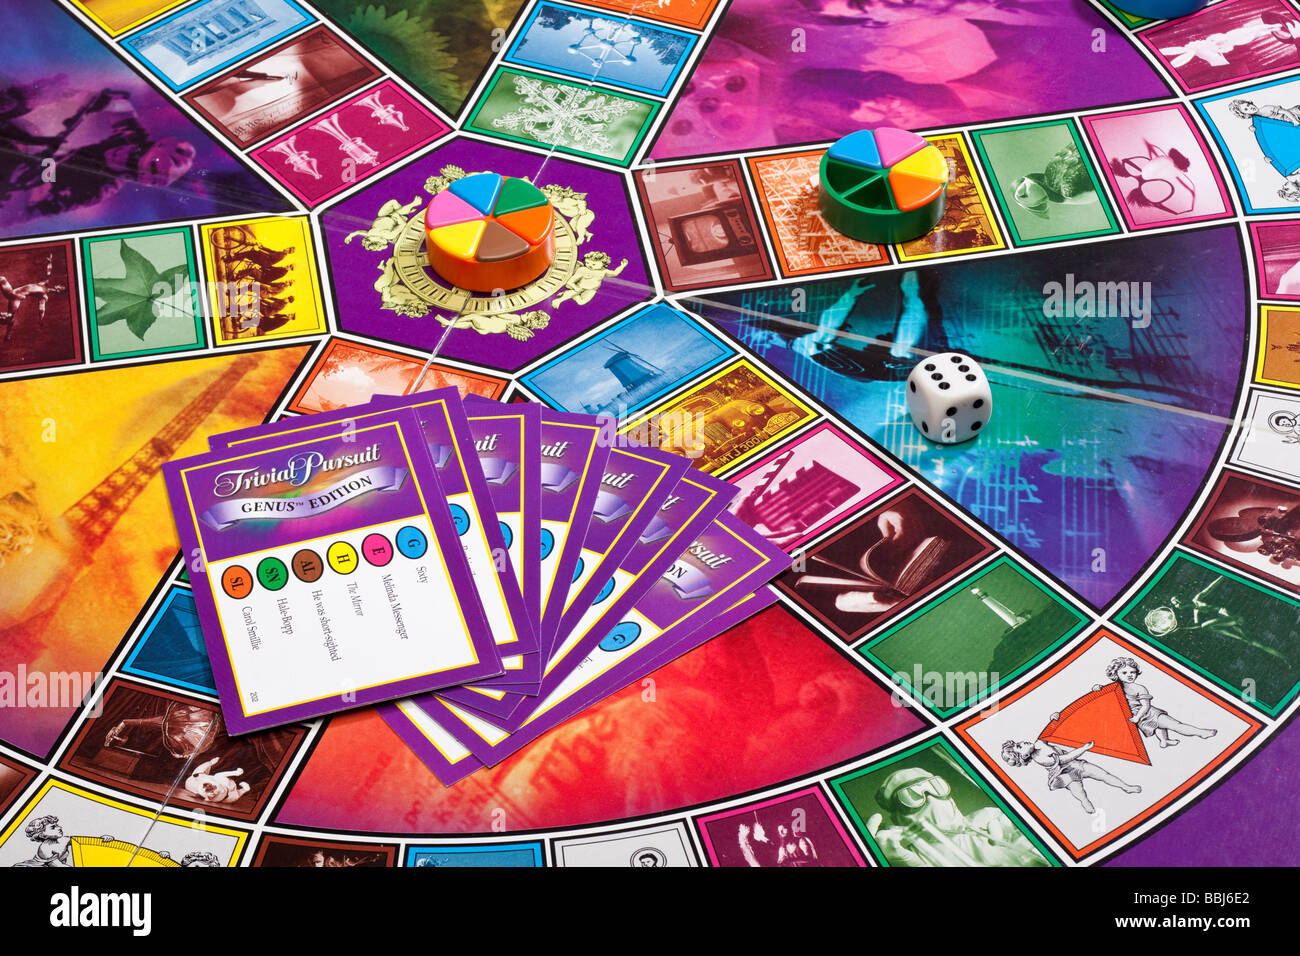 Board game Trivial Pursuit with pieces - Stock Image